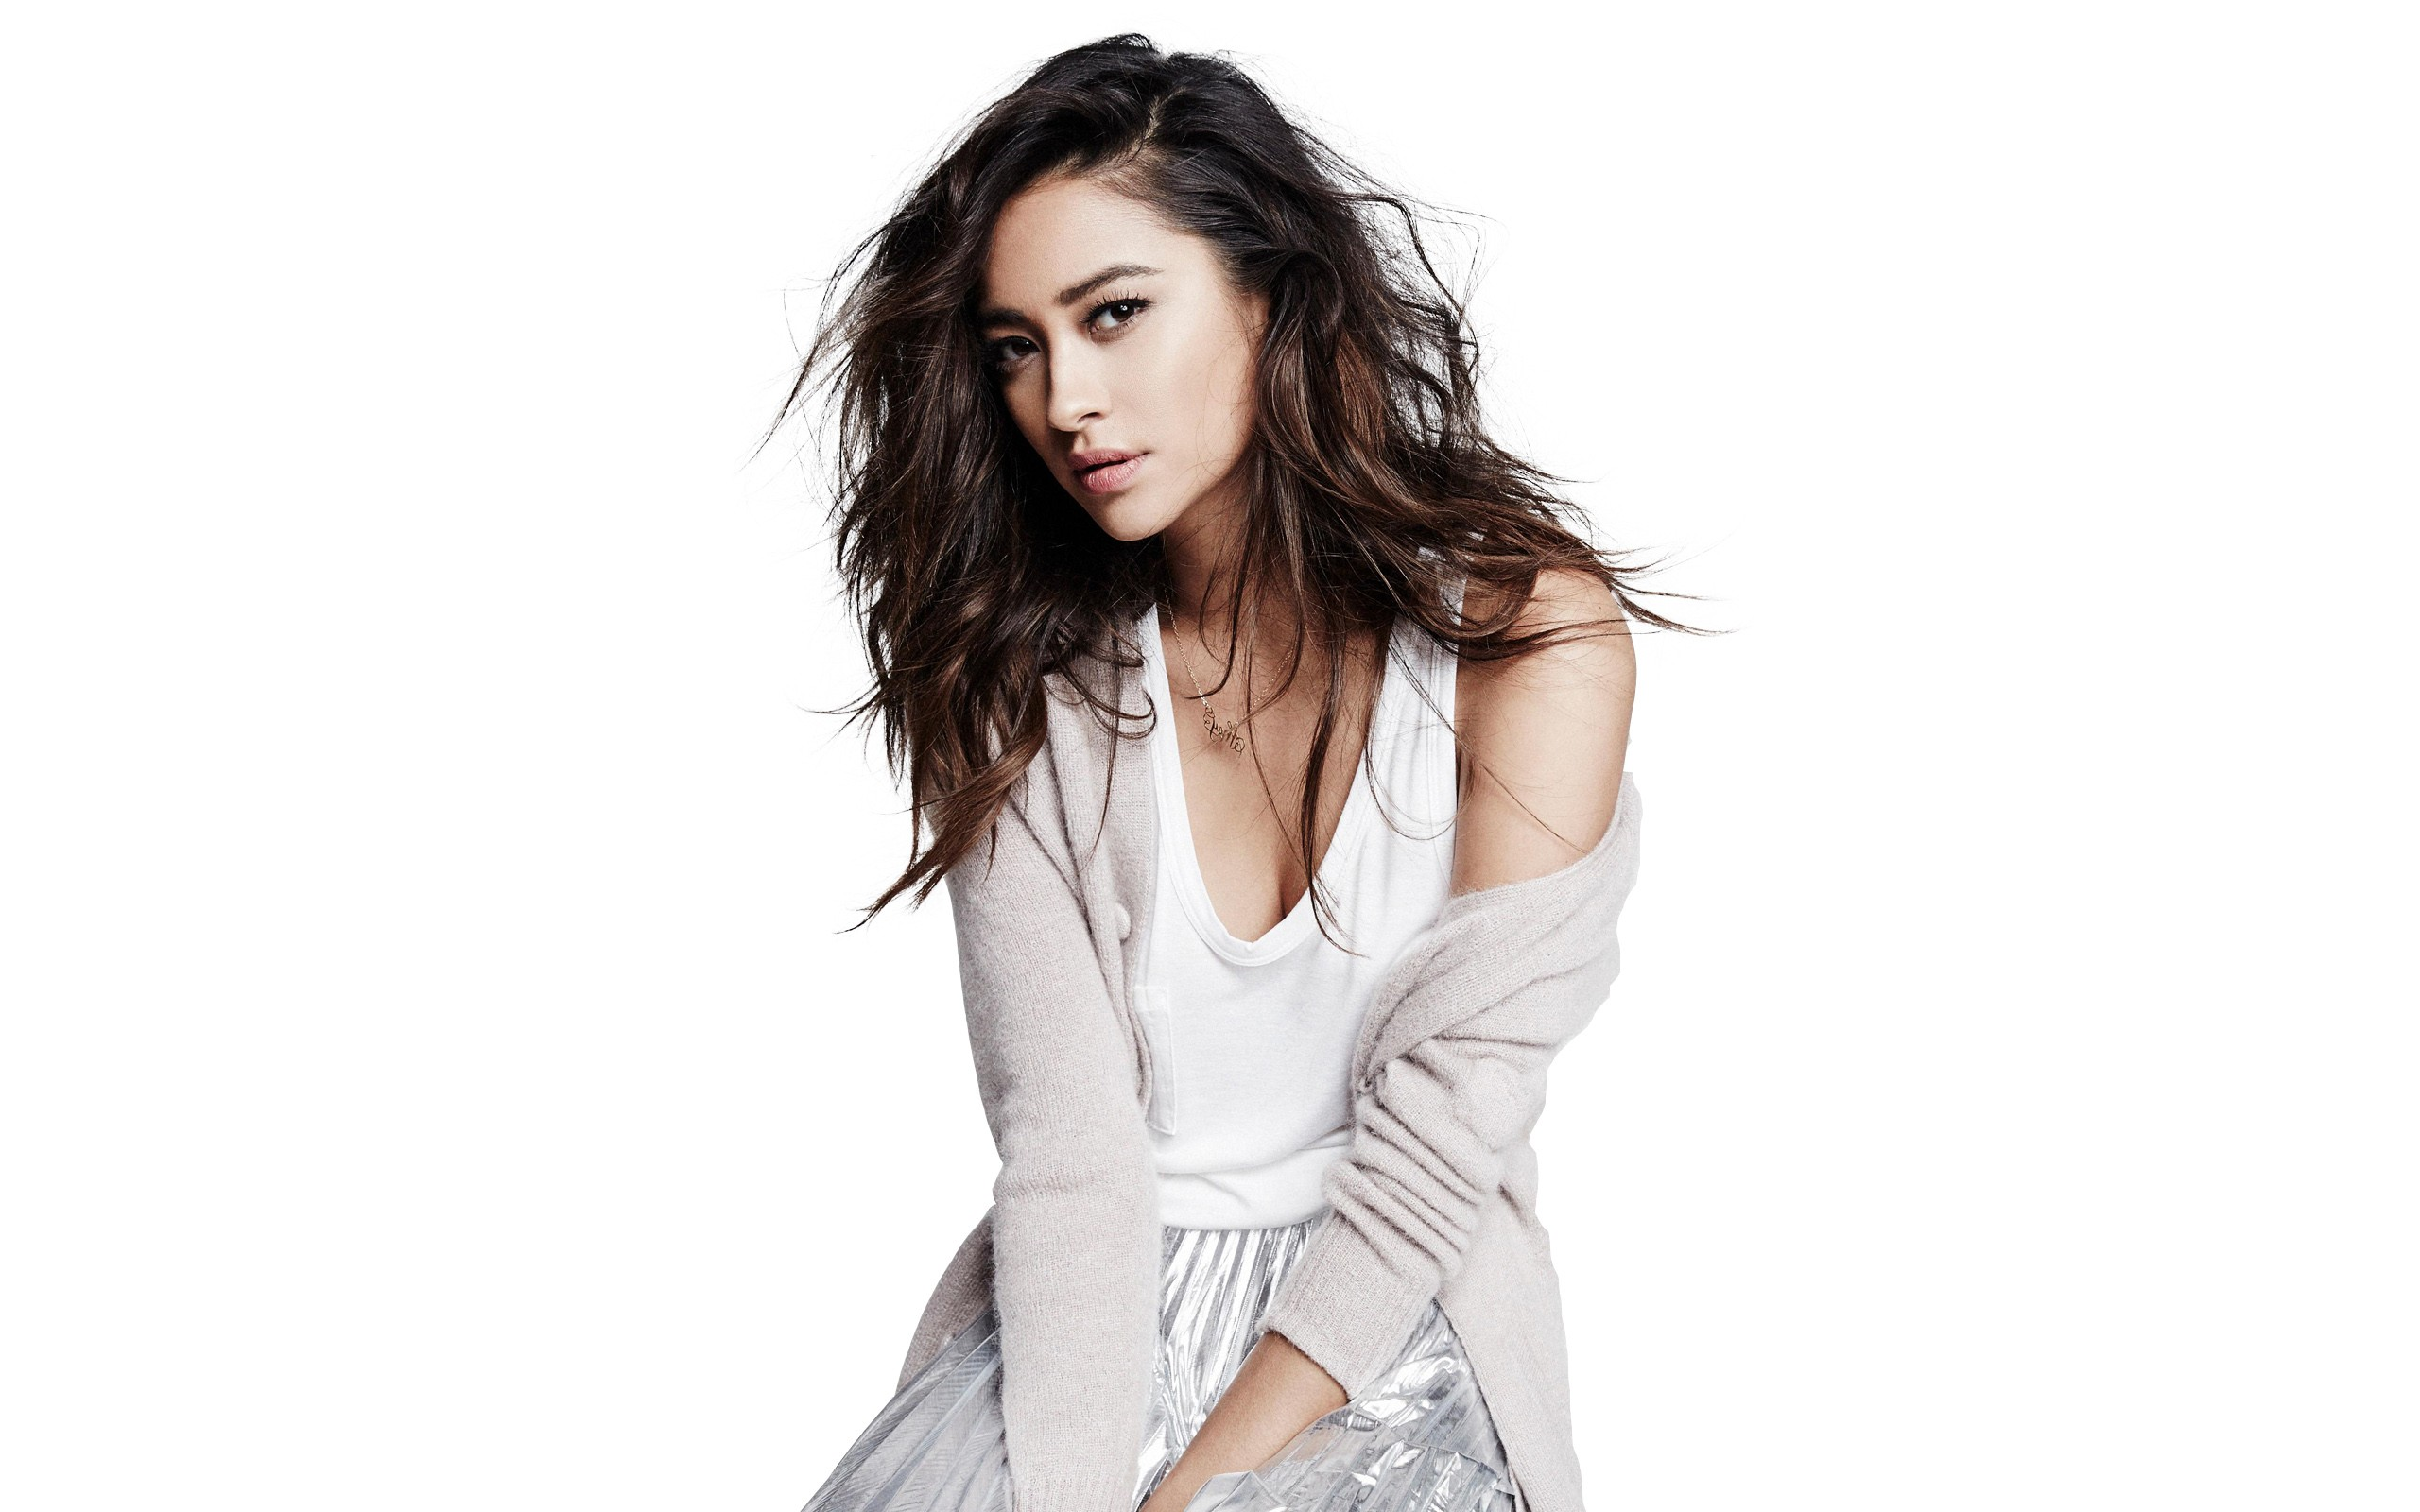 2560x1600 - Shay Mitchell Wallpapers 11